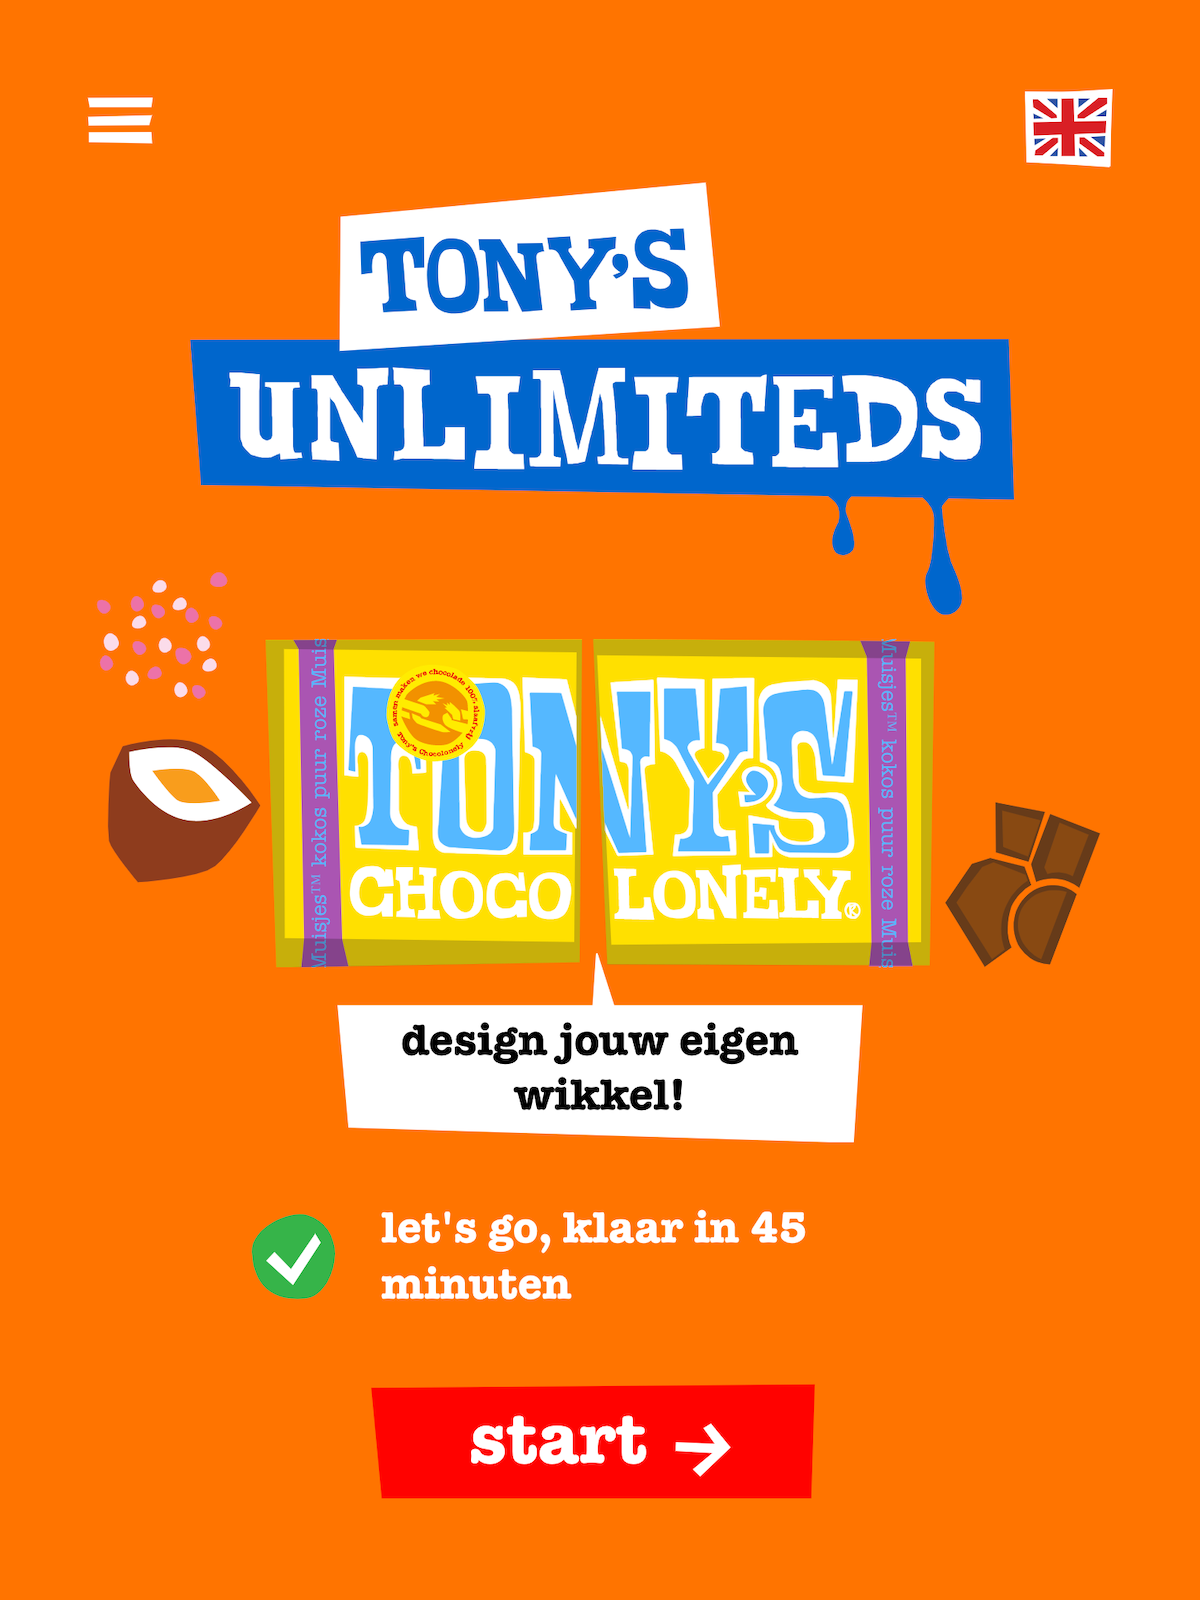 Tony's Unlimiteds